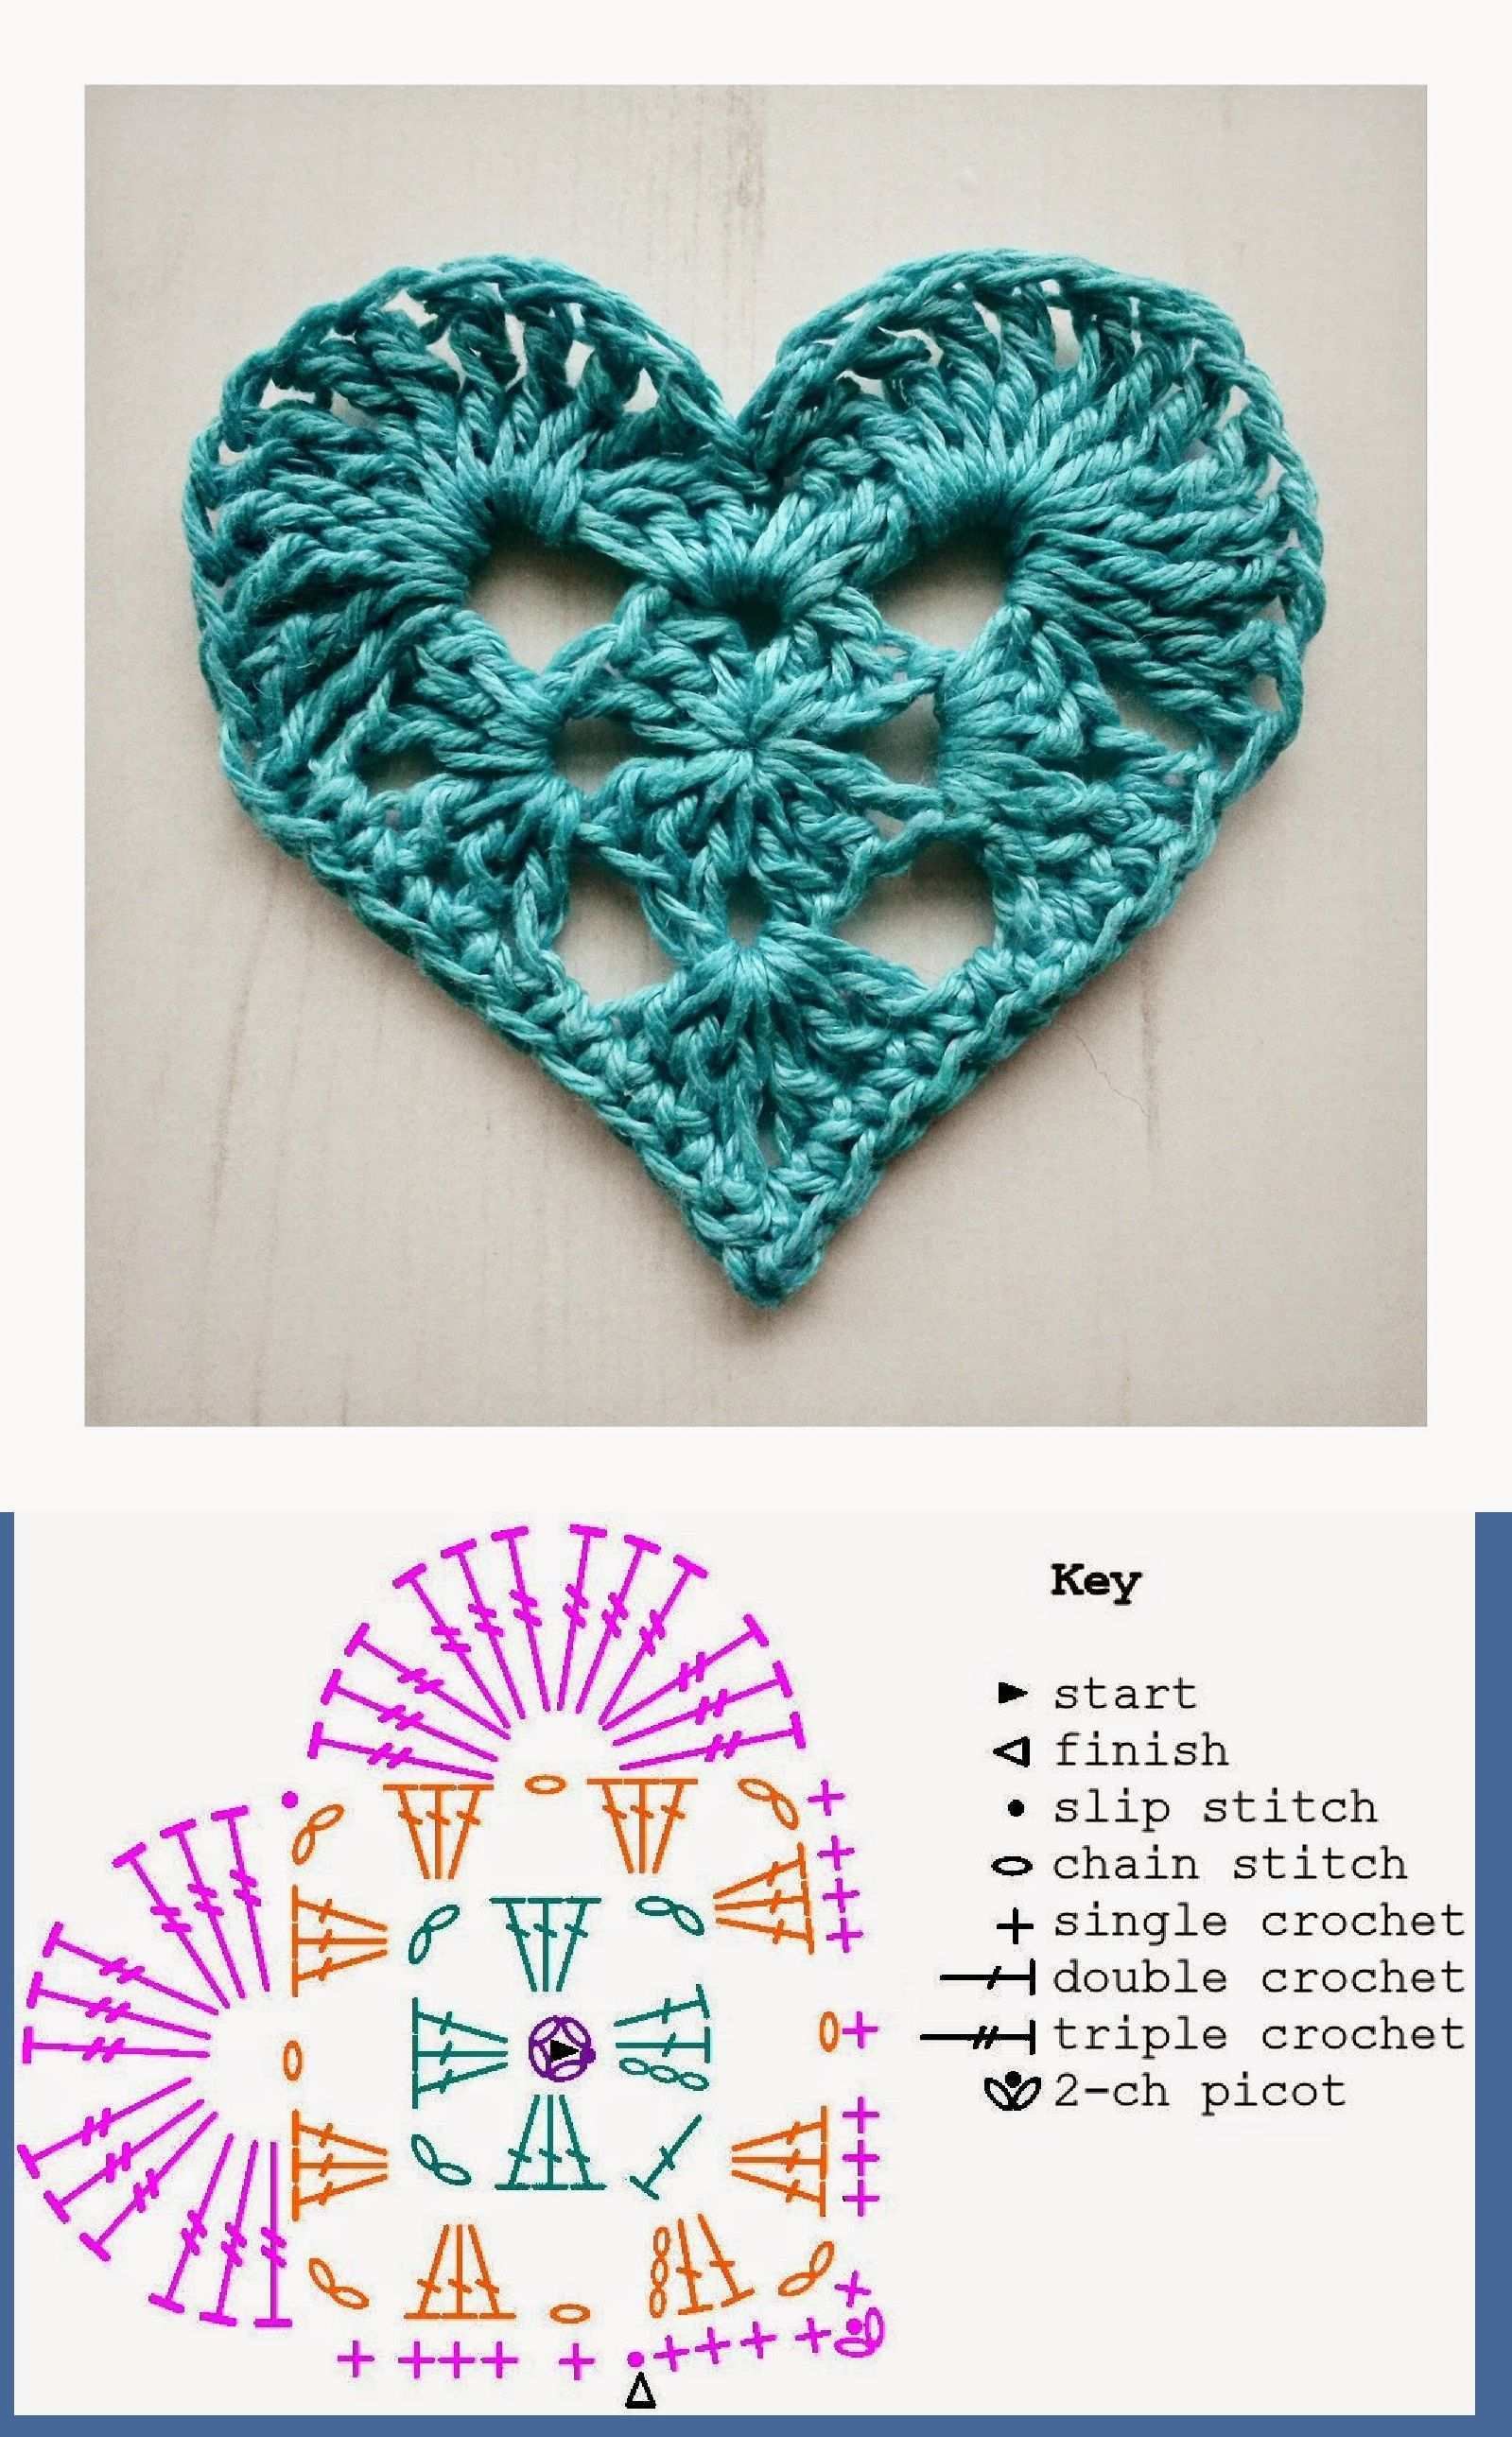 Granny Heart For Valentine S Day Written Instructions On This Blog And Downloadable Instructions On Ravel Herz Hakeln Anleitung Hakeln Muster Gehakeltes Herz